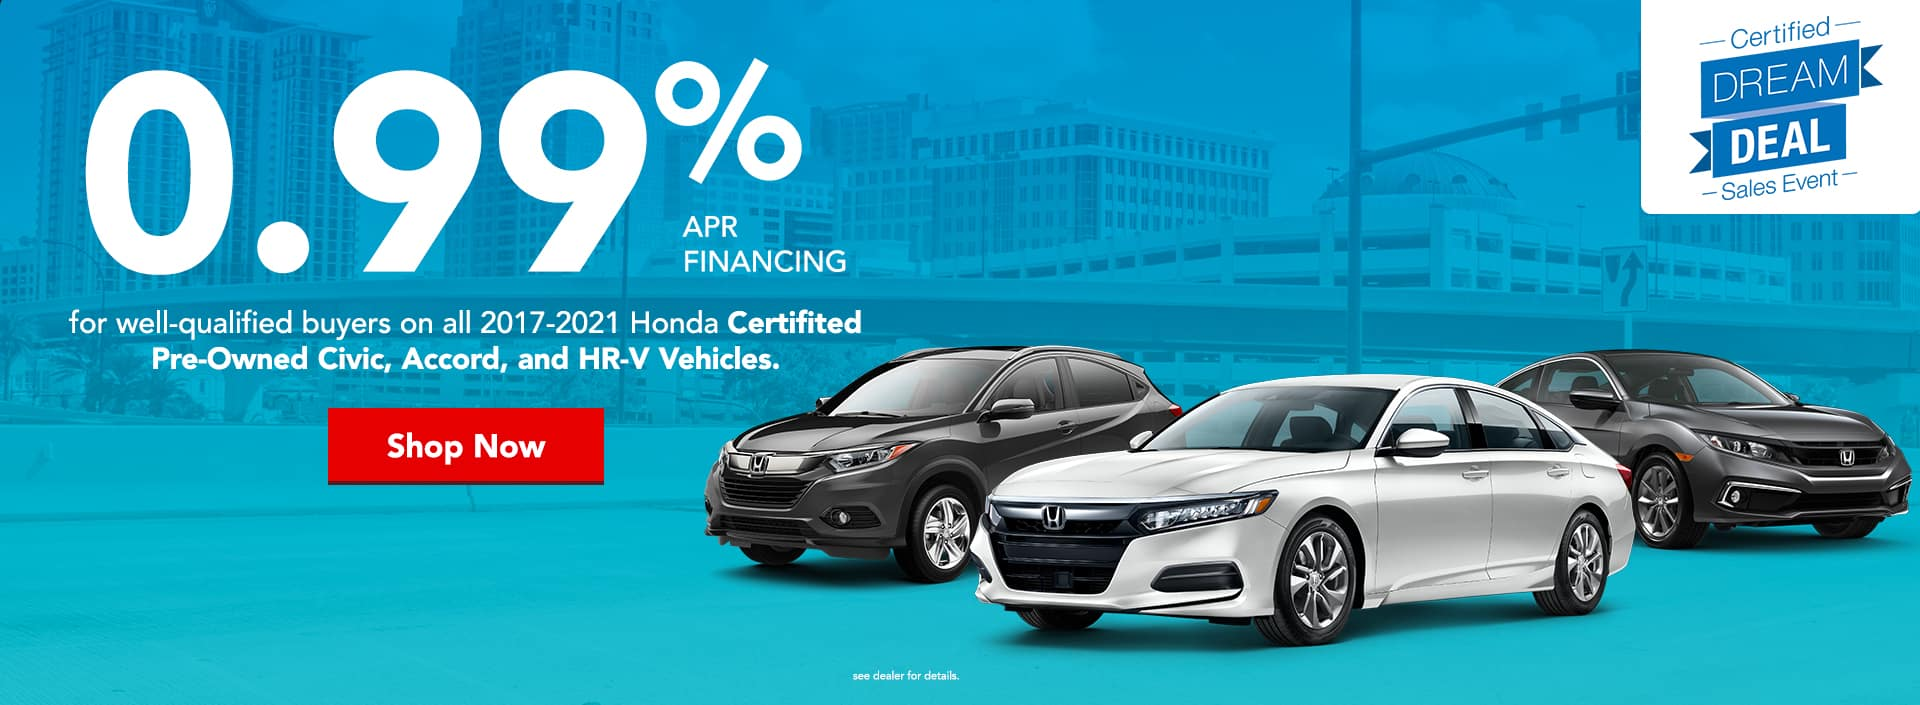 0.99% APR financing for well-qualified buyers on all 2017-2021 Honda Certifited Pre-Owned Civic, Accord, and HR-V Vehicles.